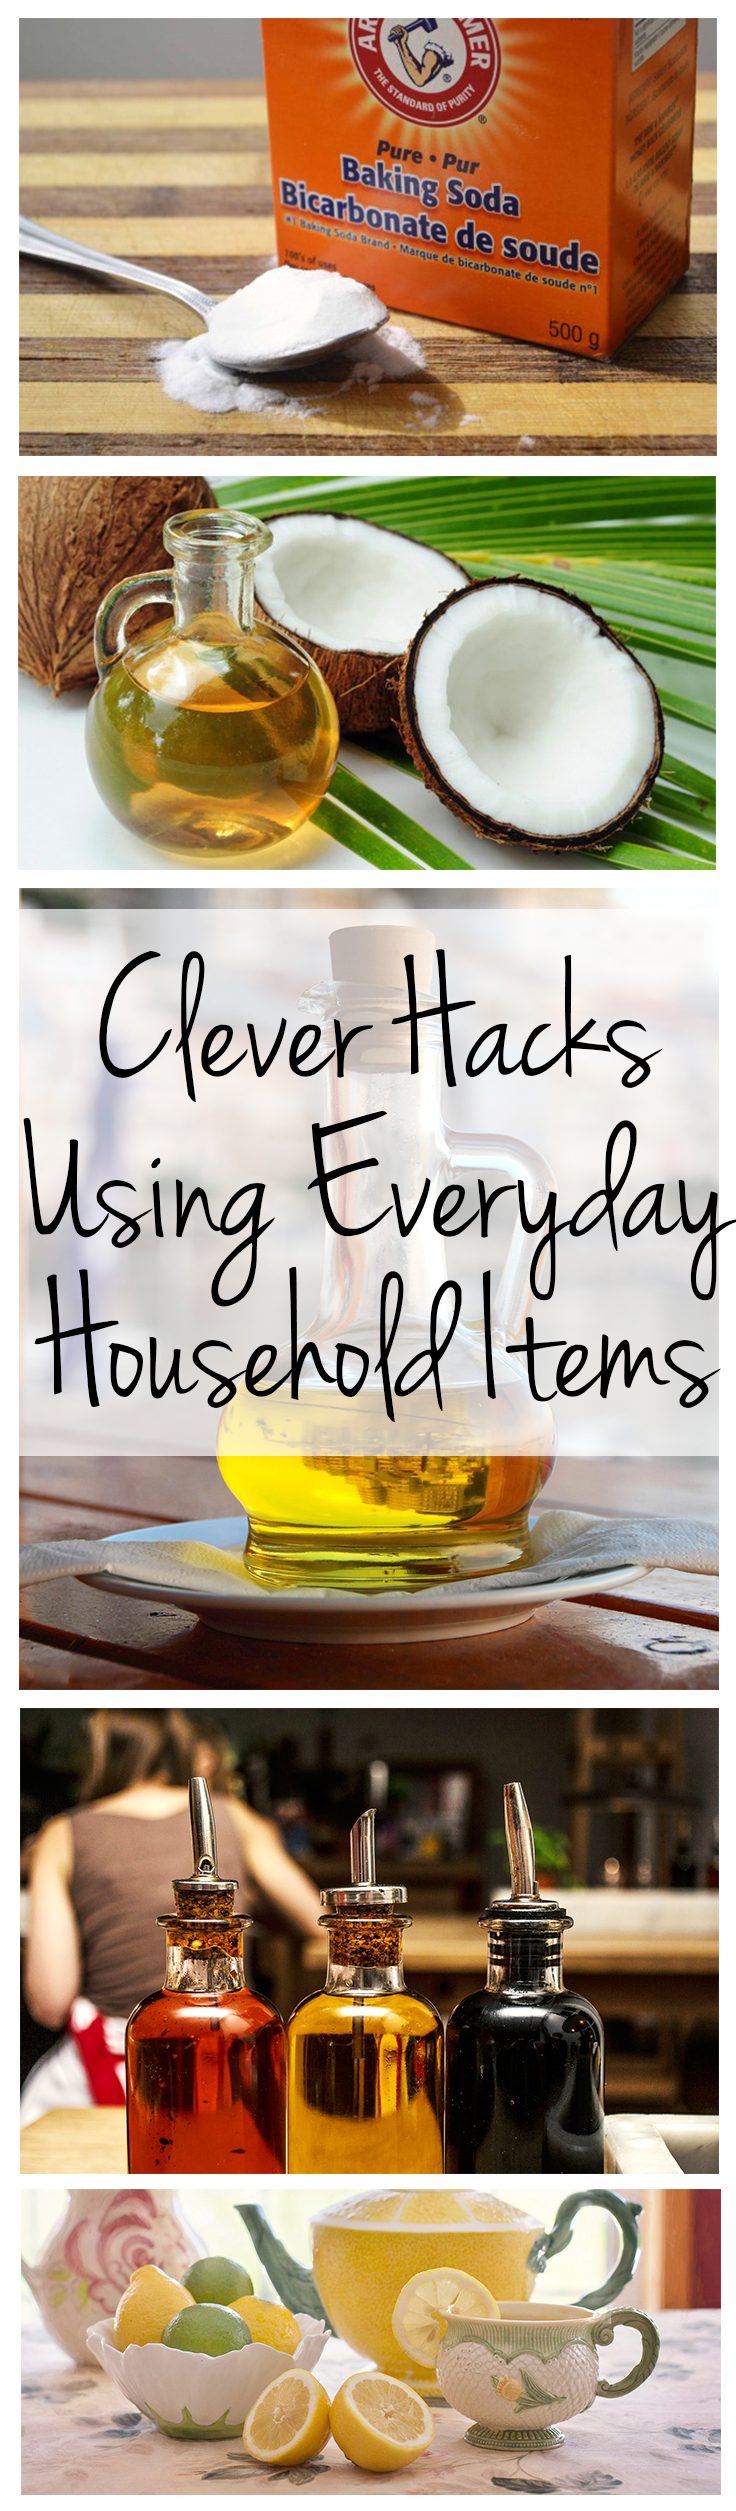 Cleaning, cleaning hacks, household cleaning tips, popular pin, cleaning tips, cleaning tips and tricks.